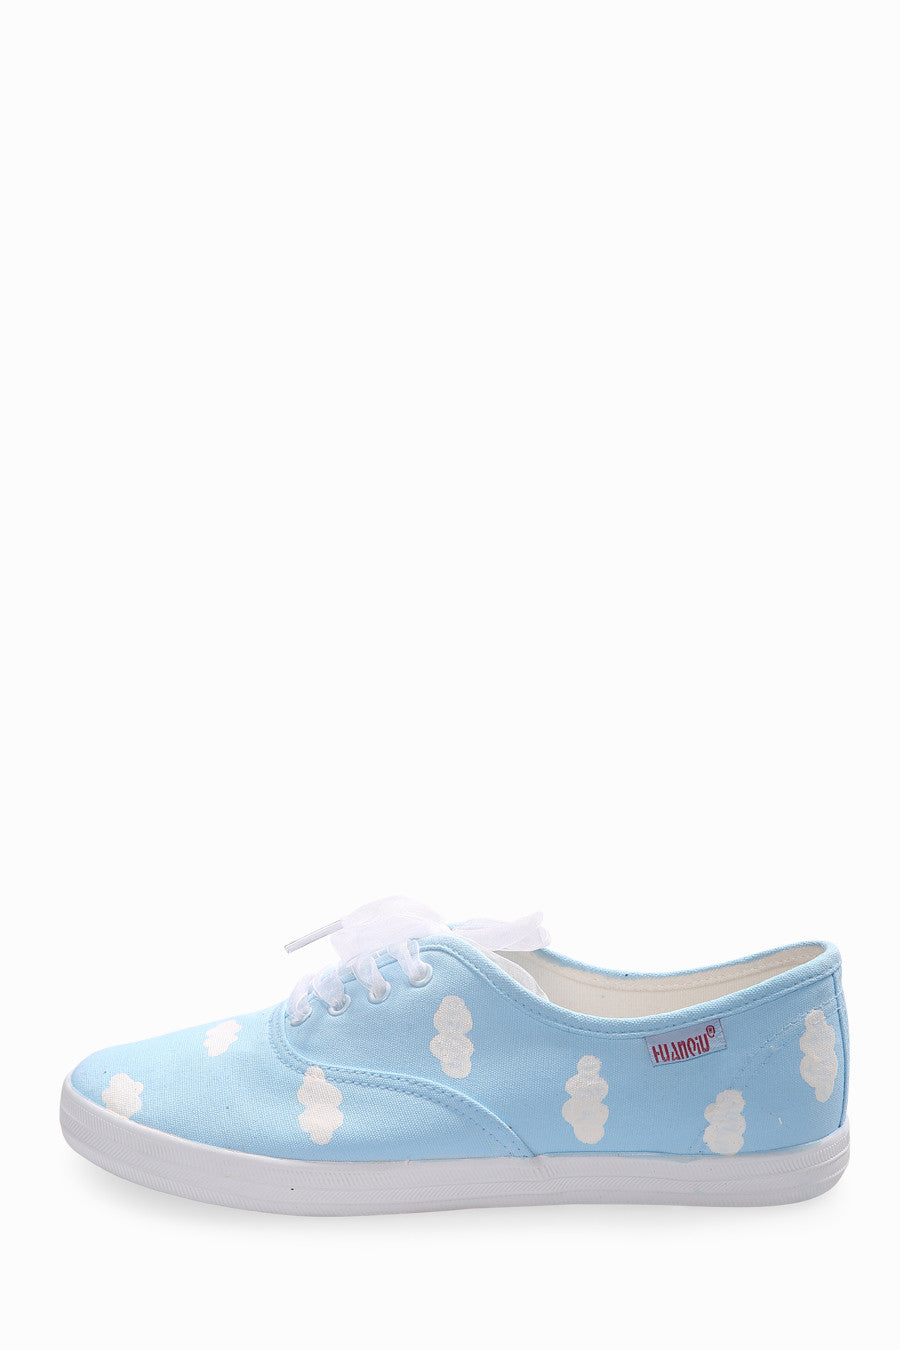 Cute Blue Clouds Printed Sneakers